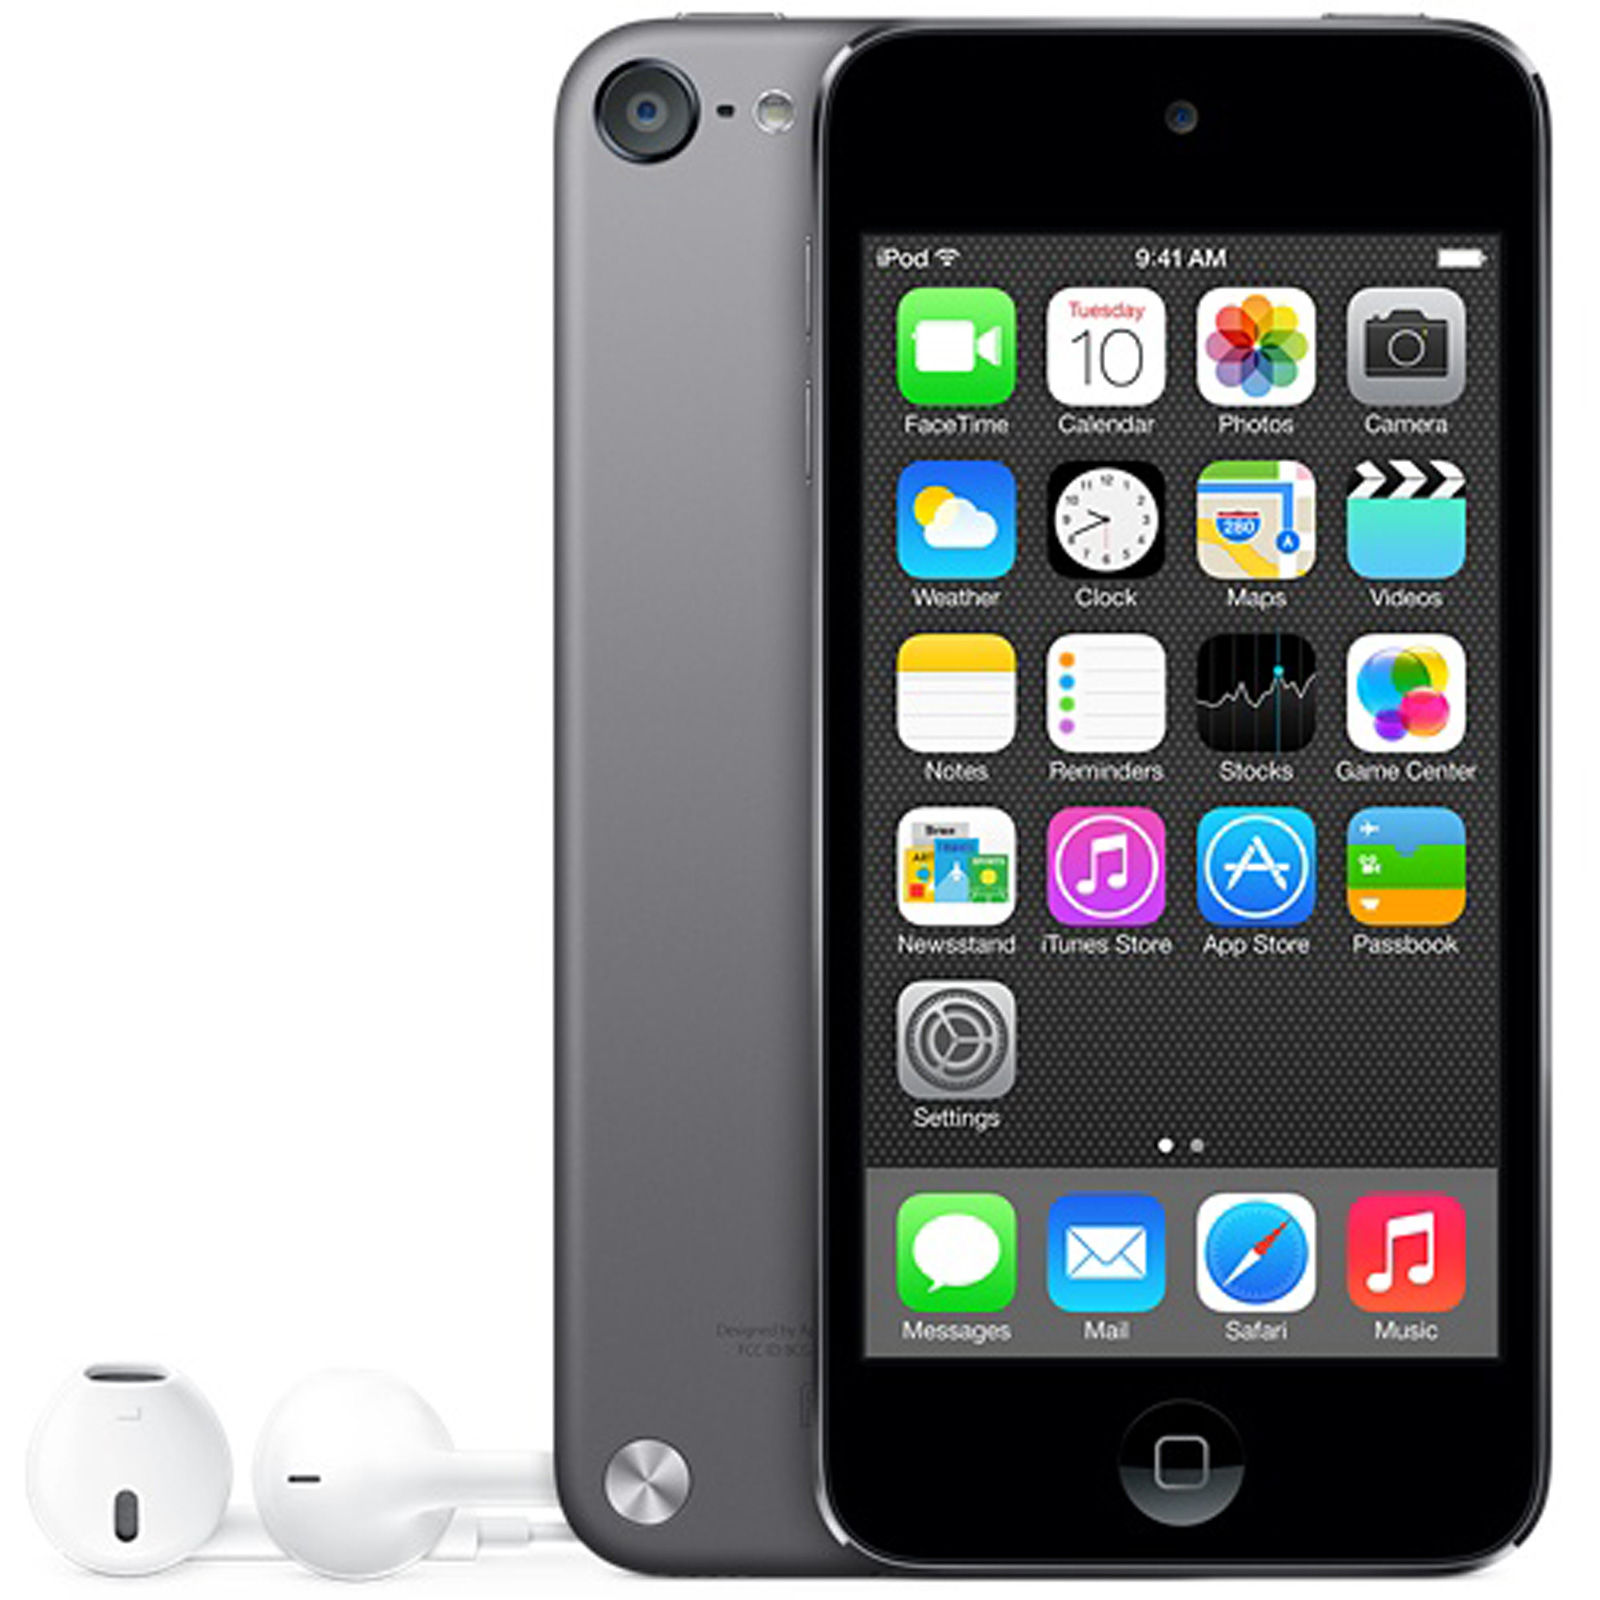 apple ipod touch 32 go argent lecteur mp3 ipod apple sur. Black Bedroom Furniture Sets. Home Design Ideas